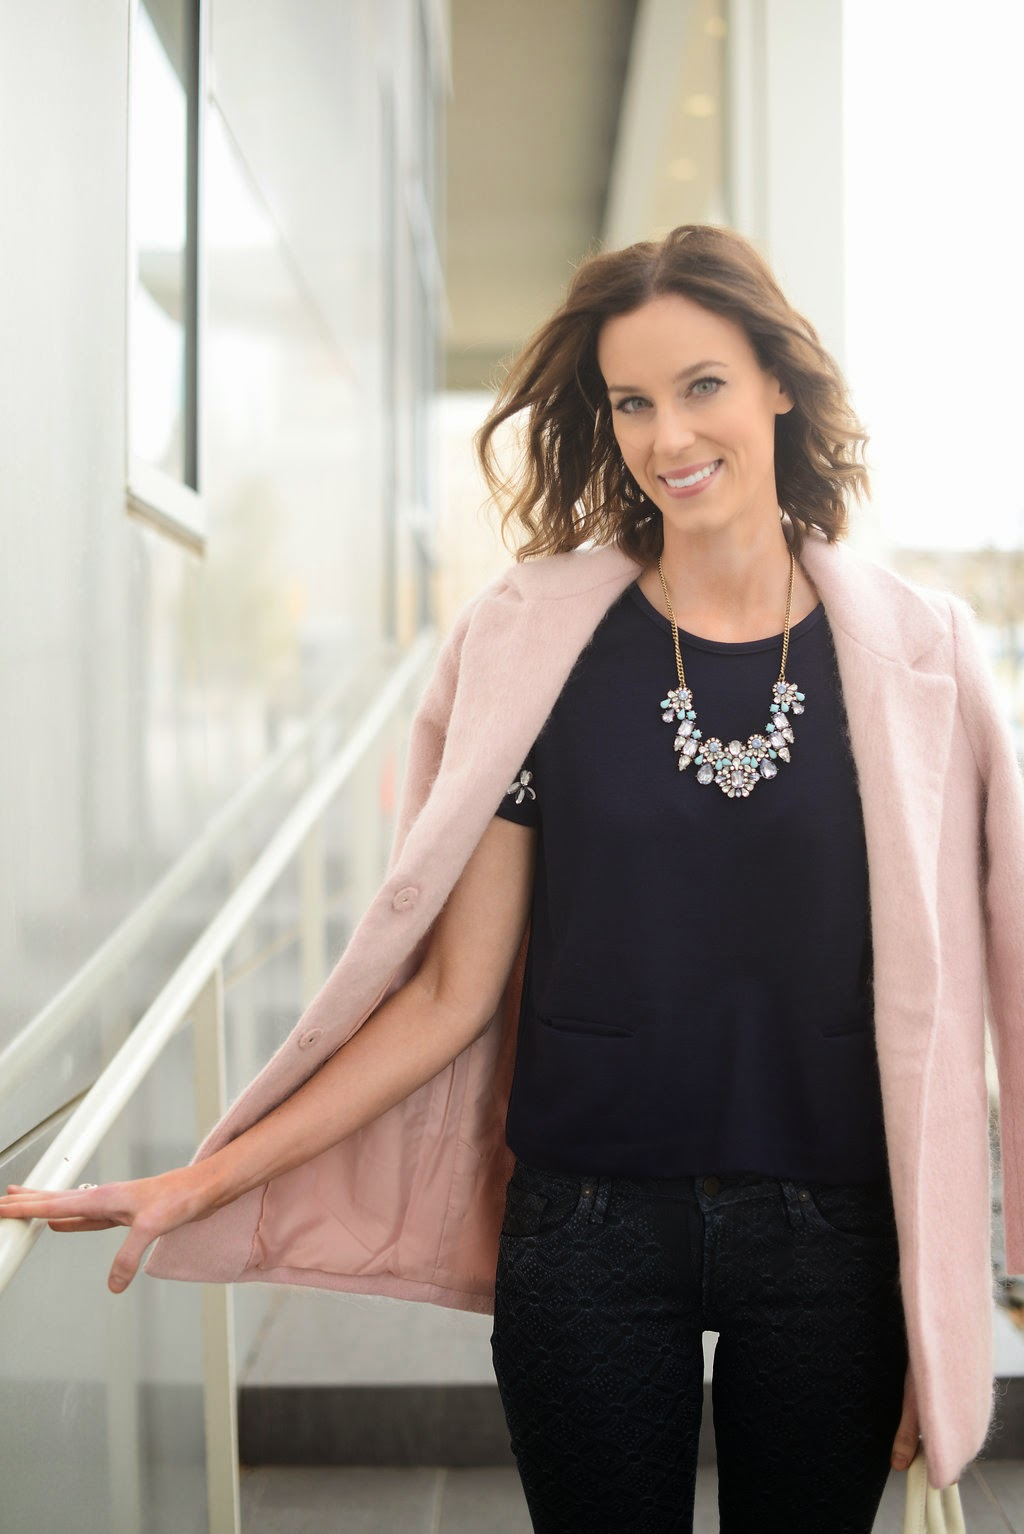 Piperlime moments of chic, navy jeans, pink coat